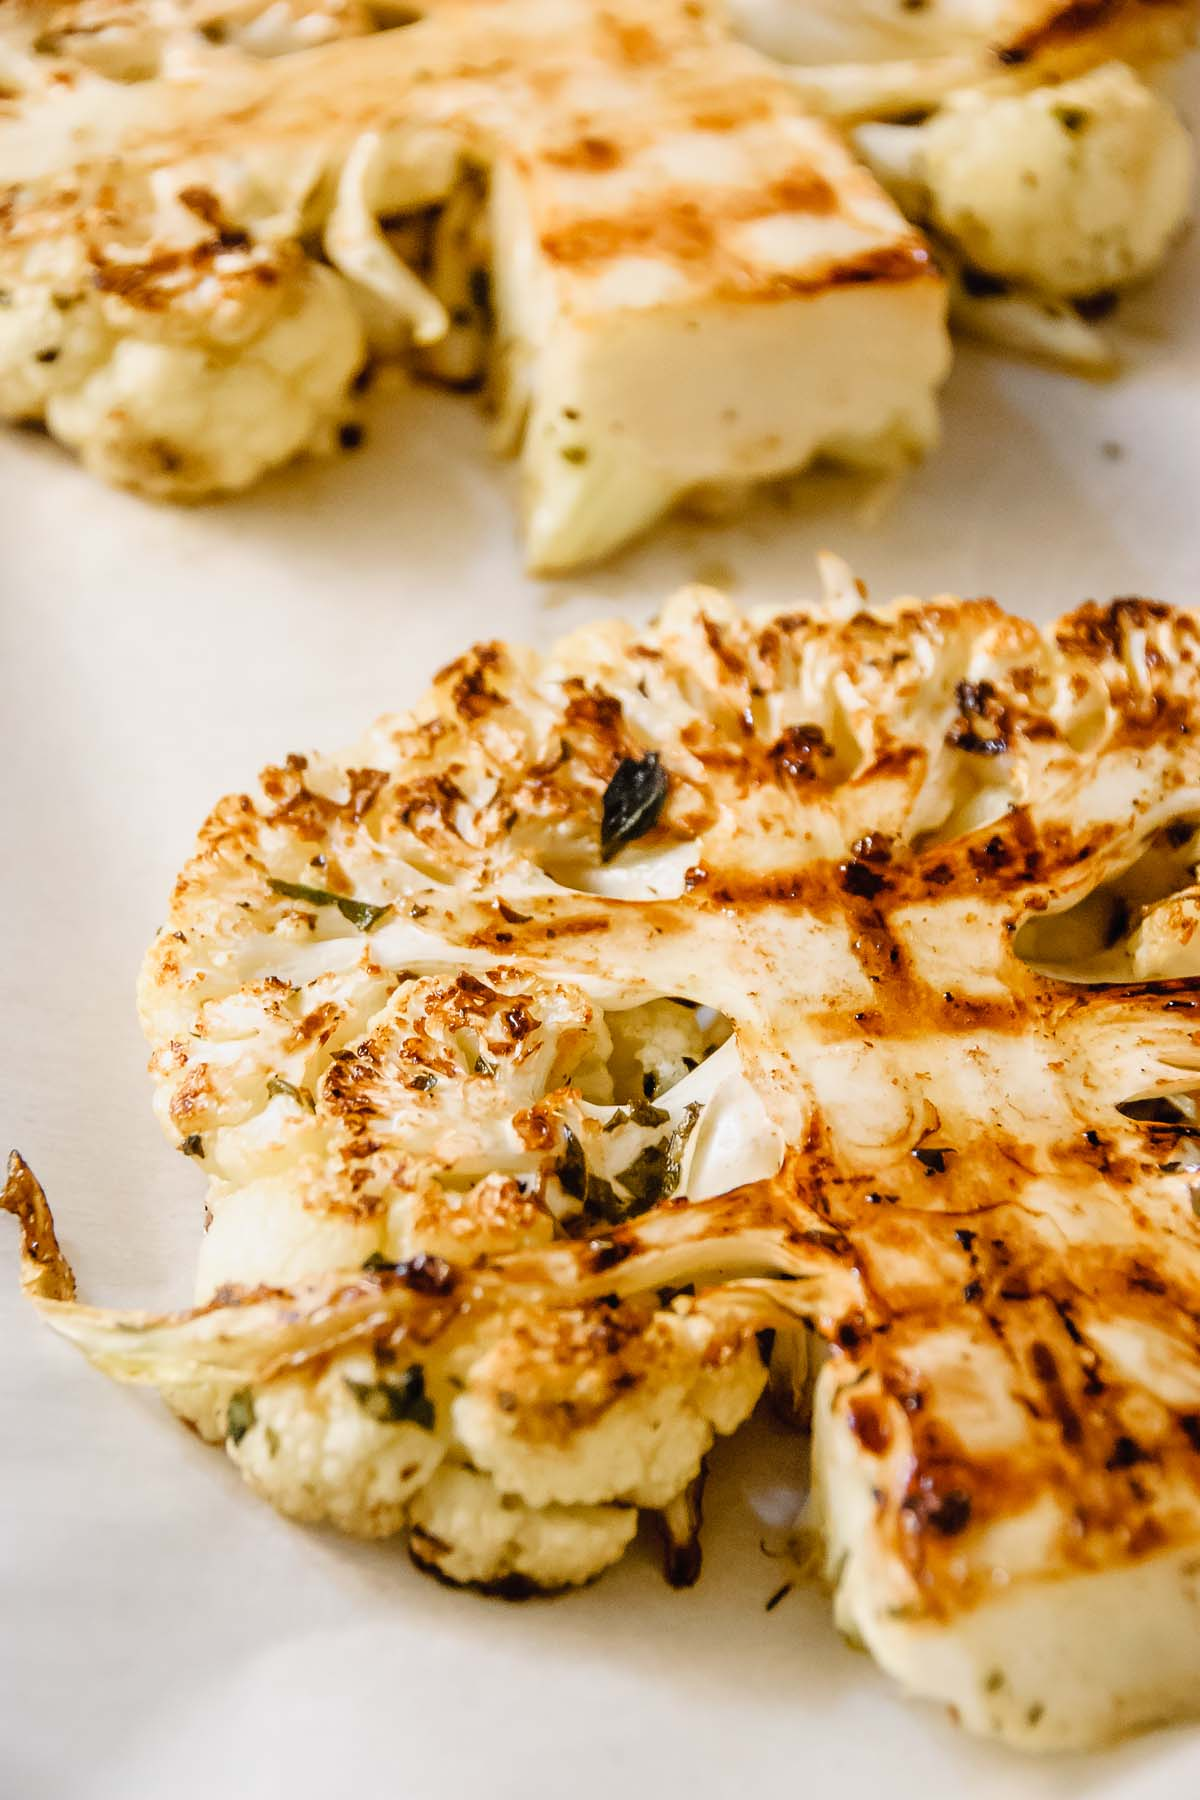 Close up of a grilled greek cauliflower steak.